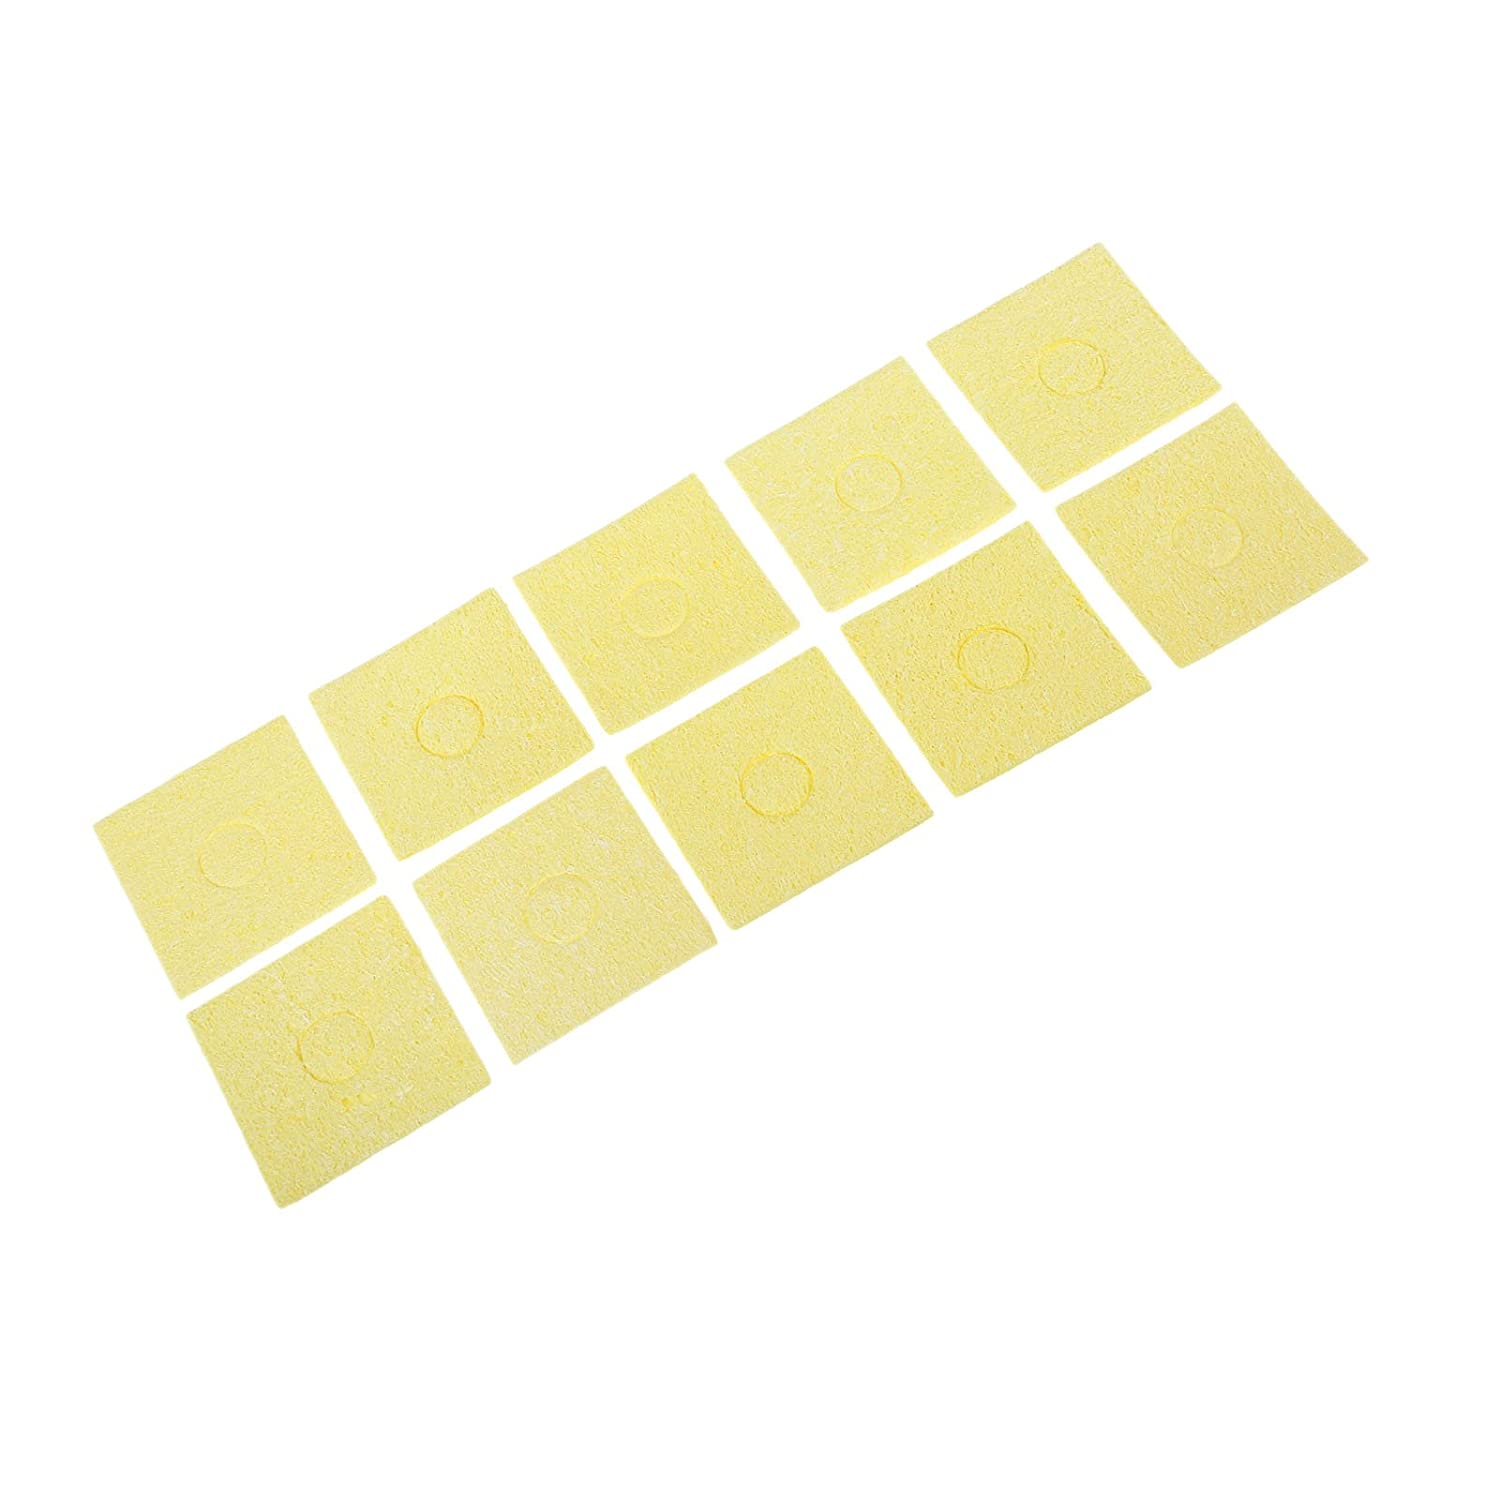 10pcs 2.17x2.17x0.08 High Temperature Enduring Condense Electric Welding Soldering Iron Cleaning Sponge Yellow Hicello